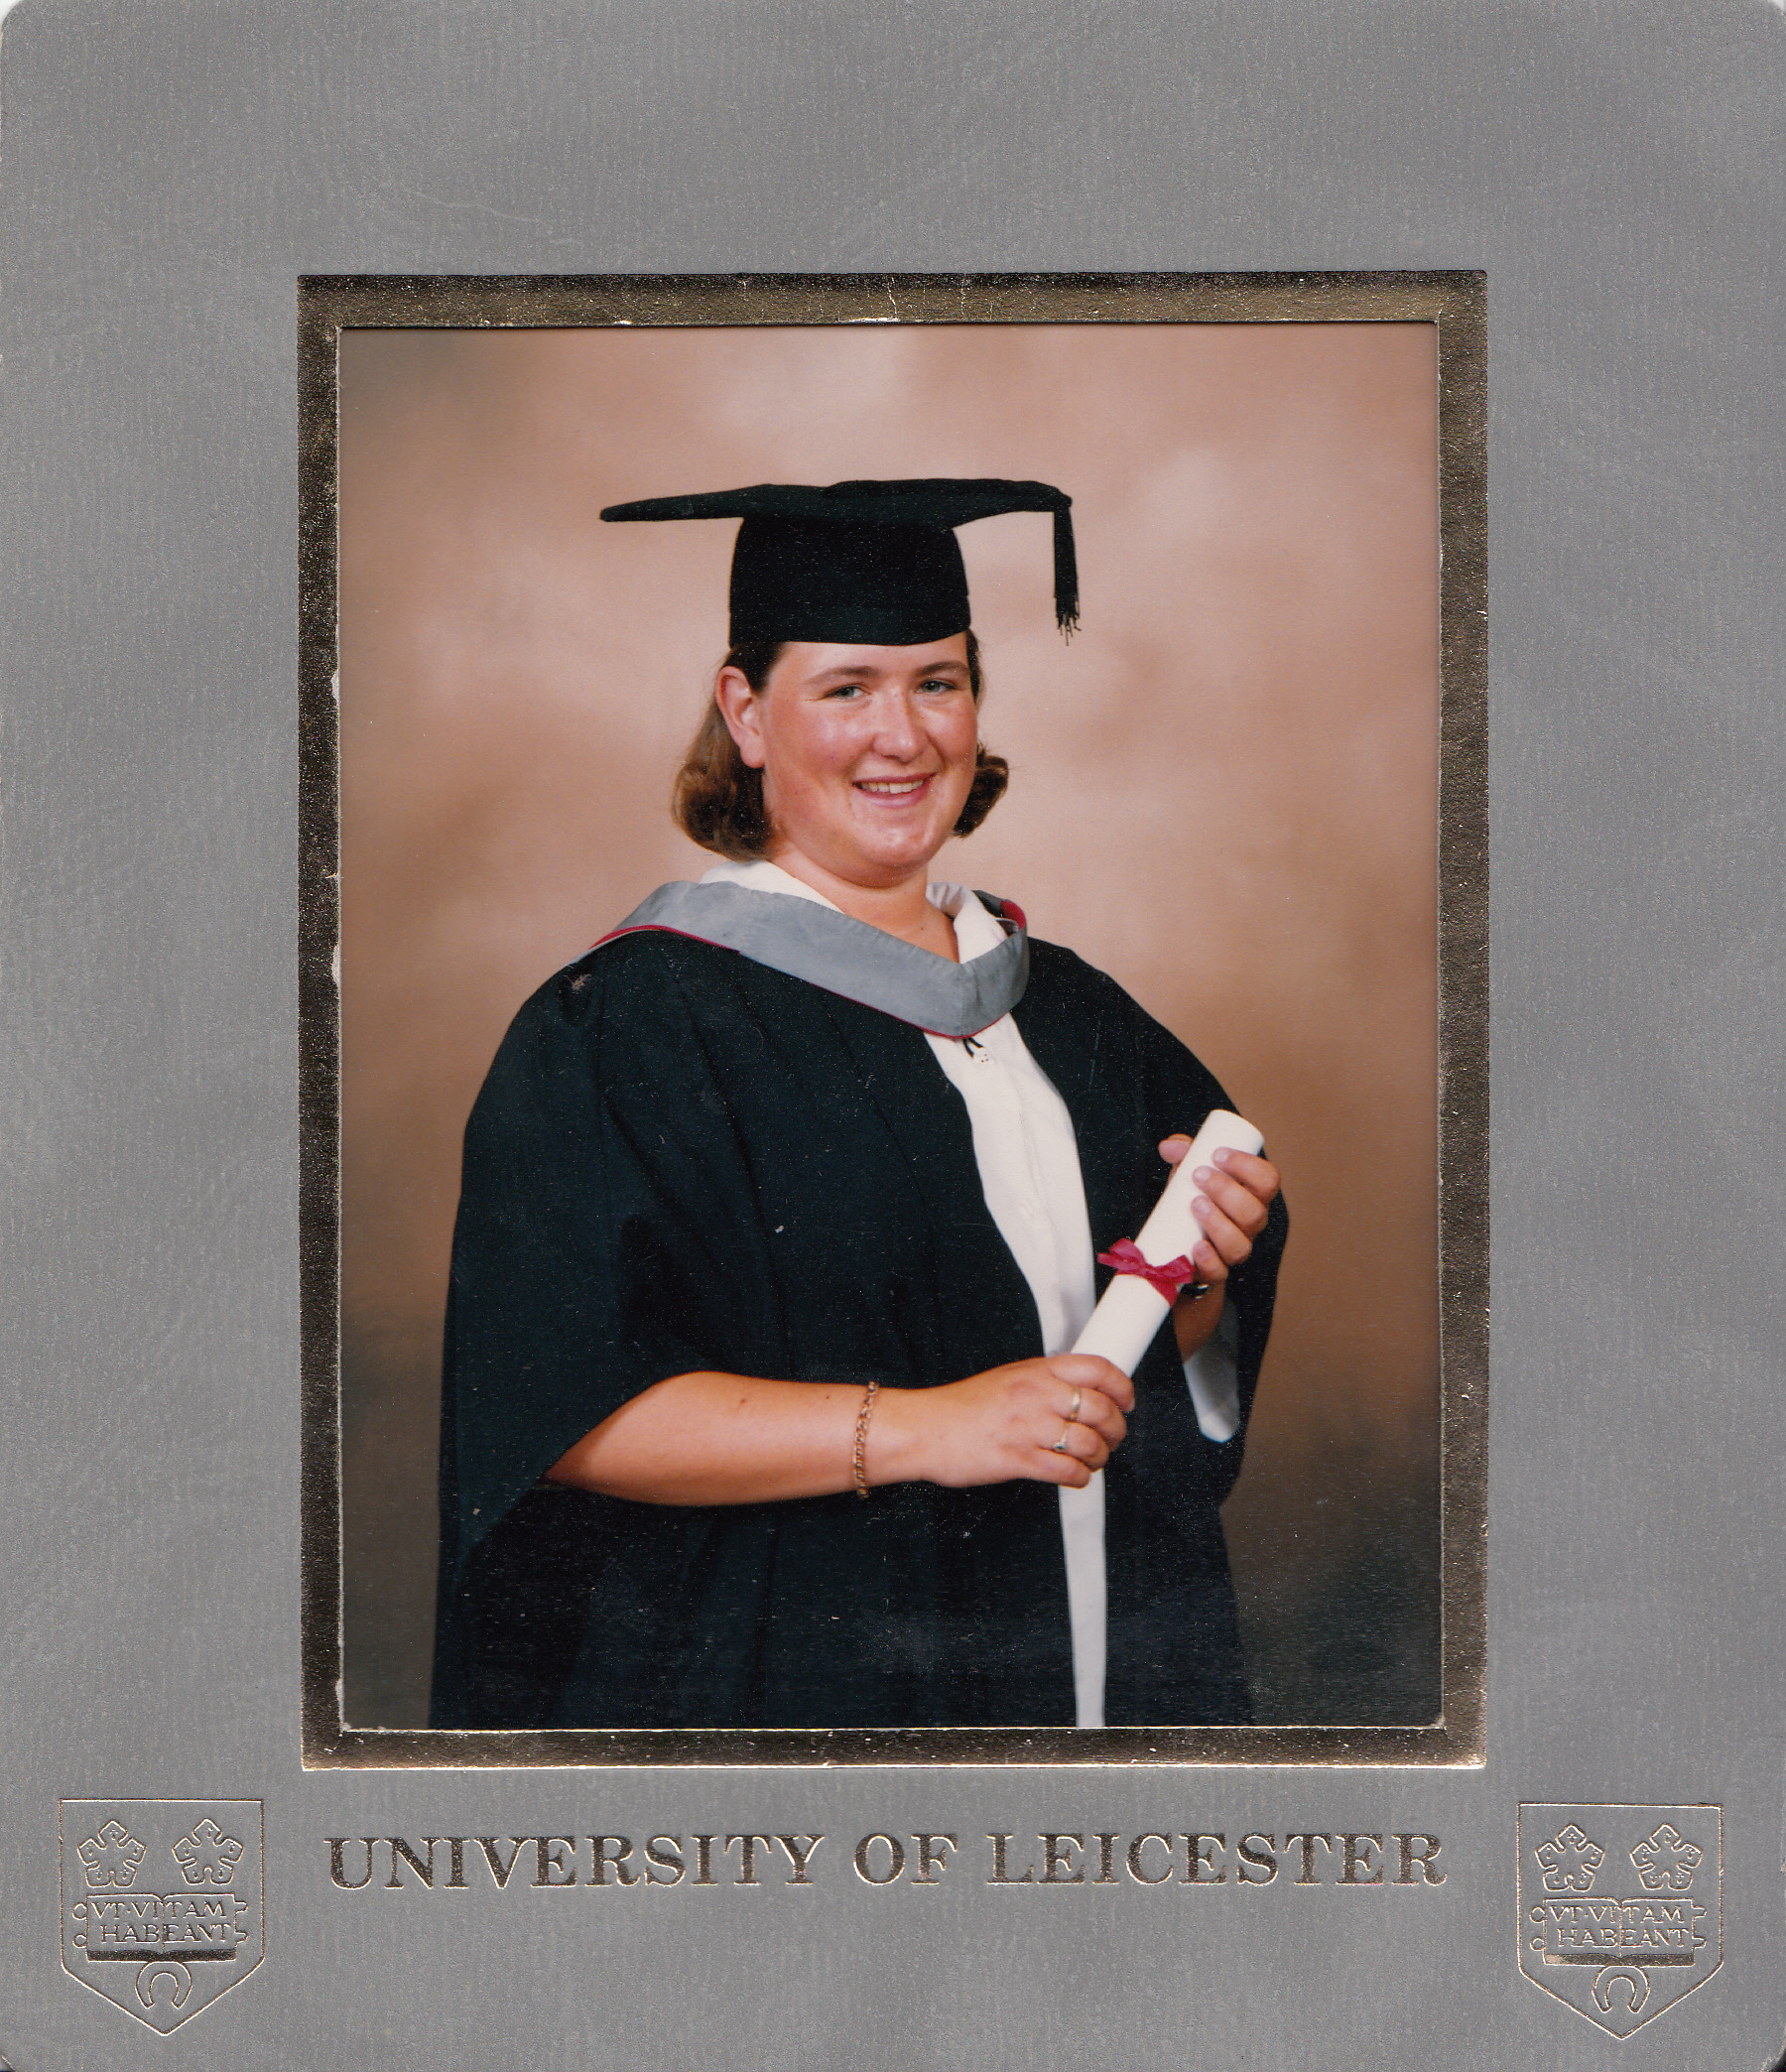 Graduation from University of Leicester